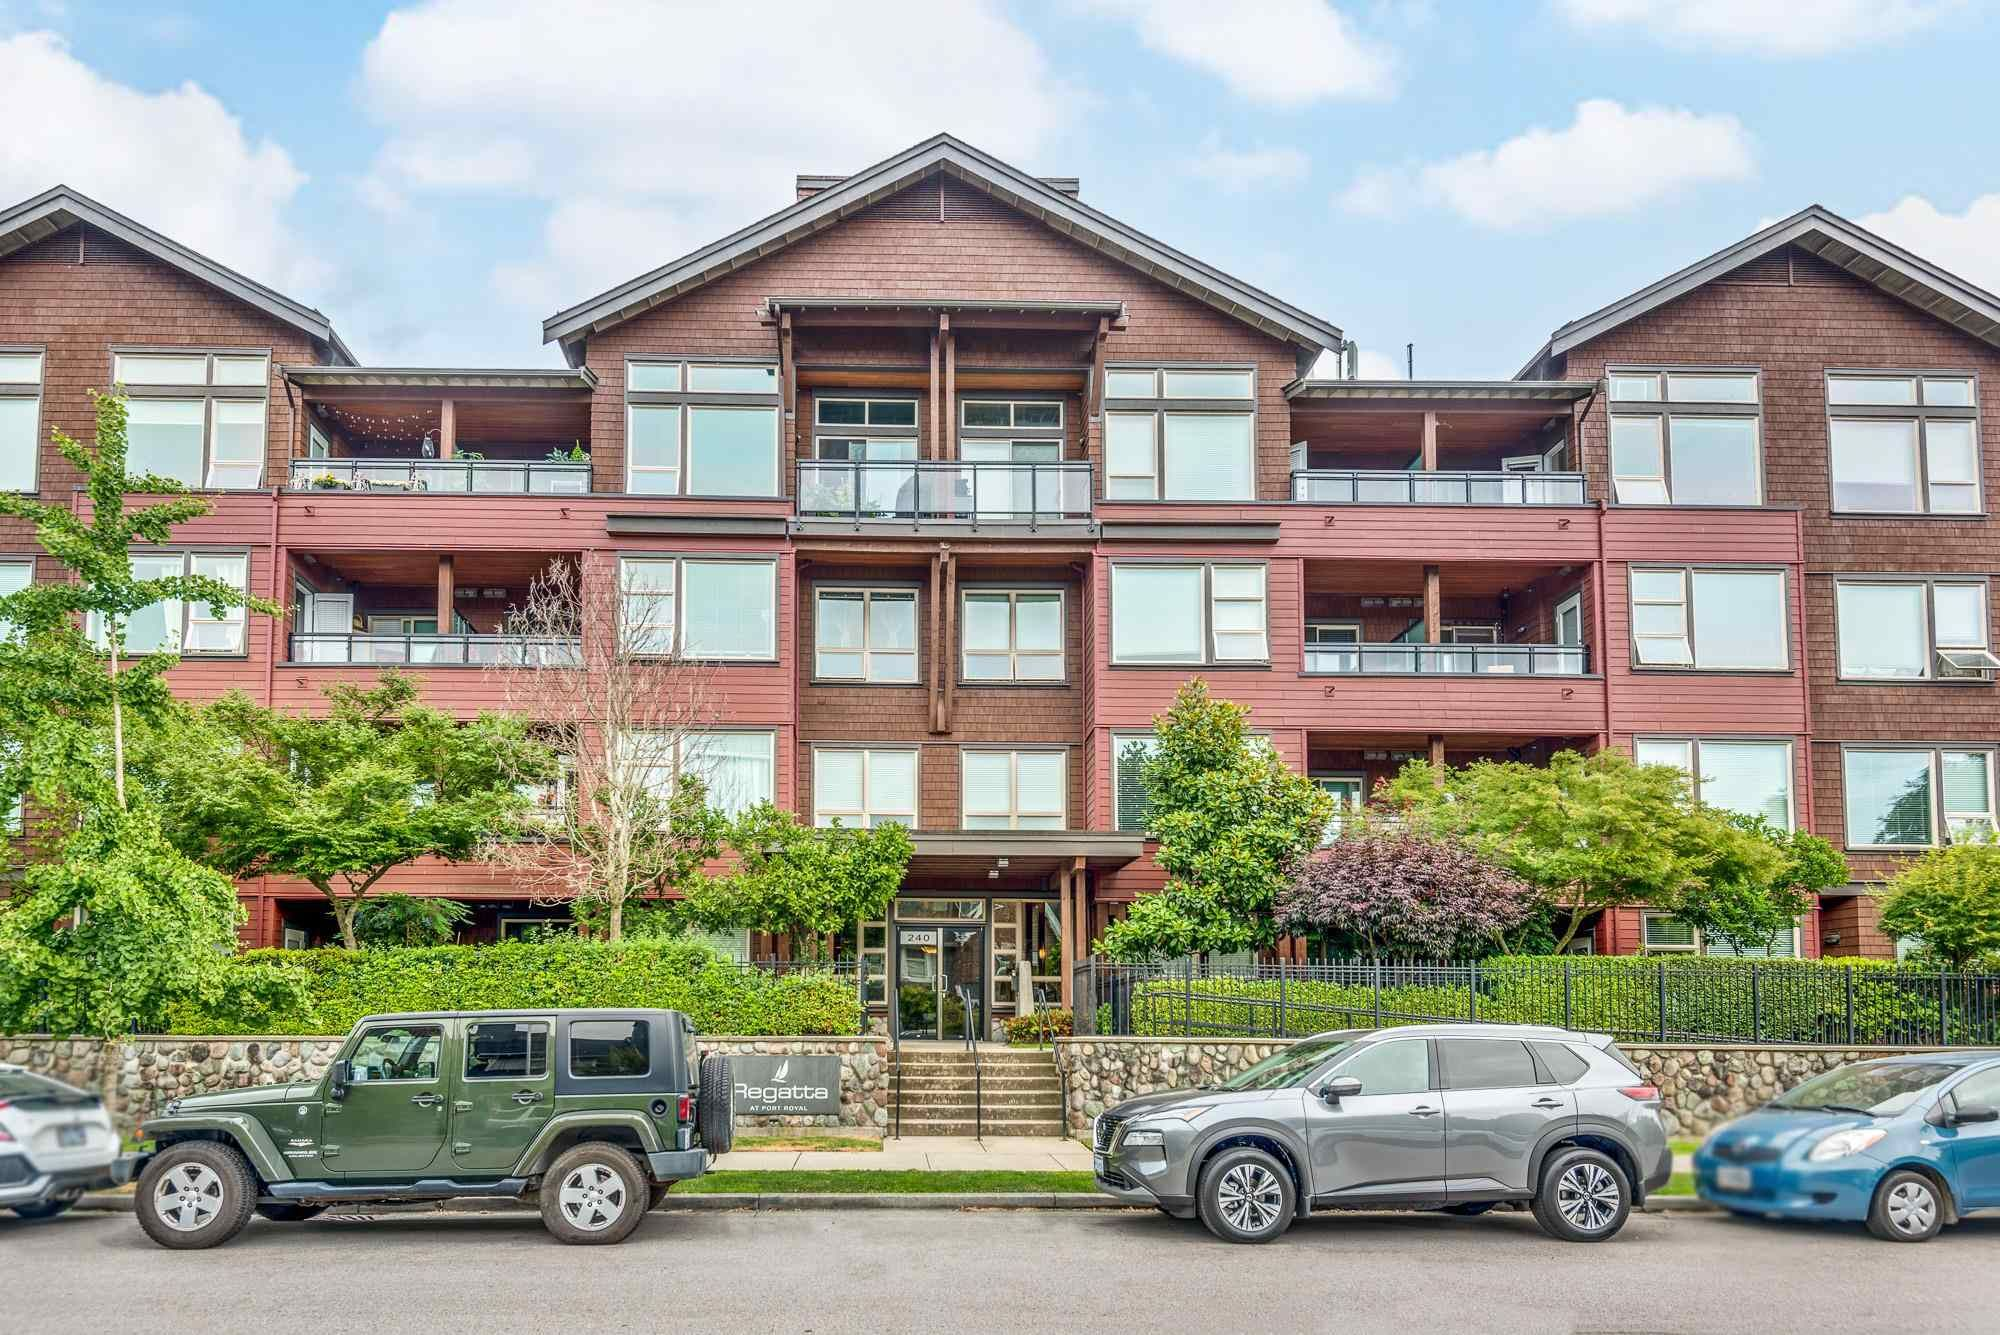 """Main Photo: 206 240 SALTER Street in New Westminster: Queensborough Condo for sale in """"Regatta by Aragon"""" : MLS®# R2602839"""